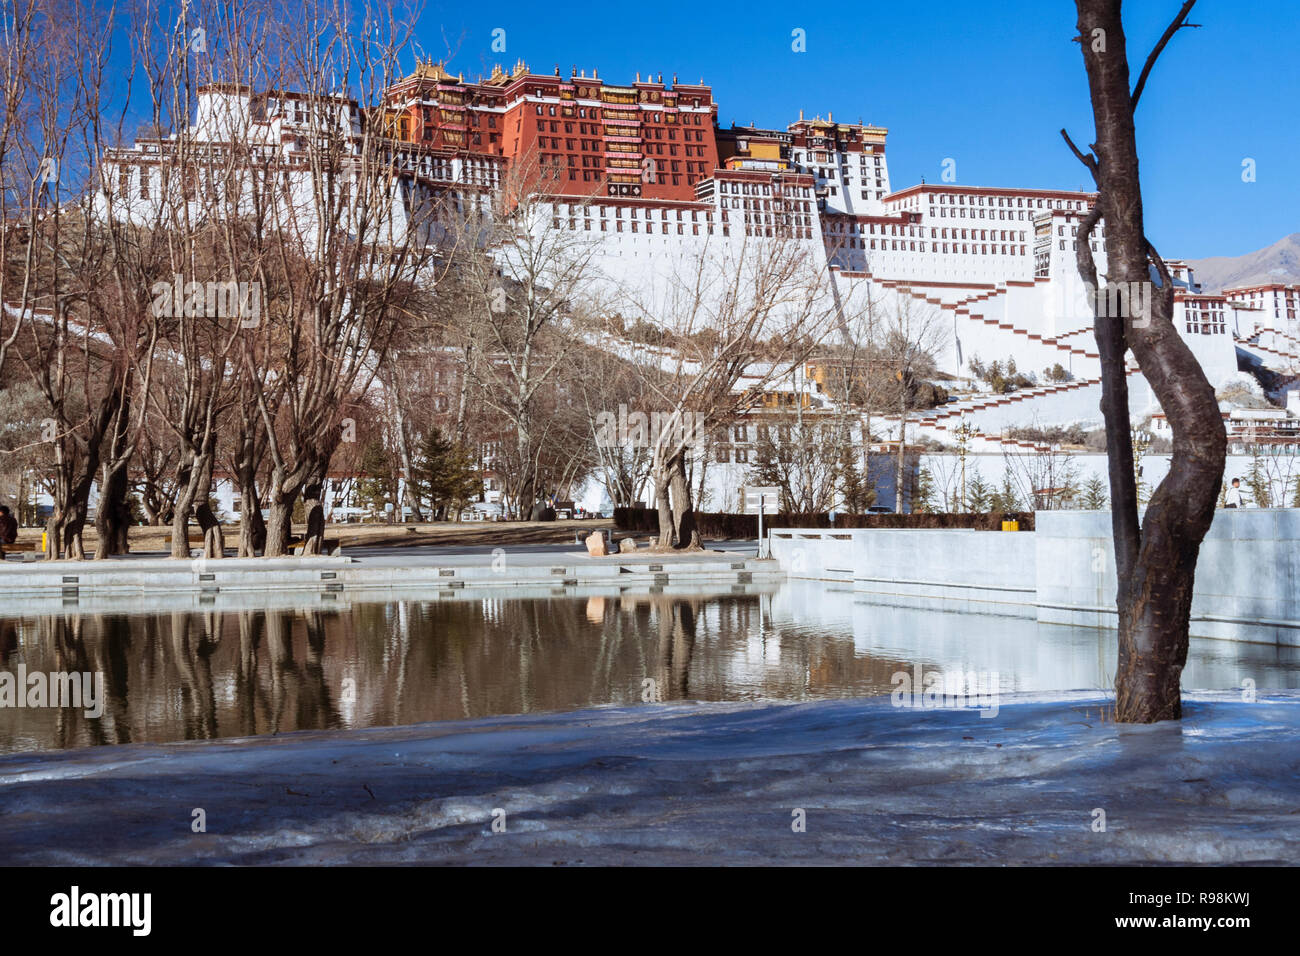 Lhasa, Tibet Autonomous Region, China : Potala palace. First built in 1645 by the 5th Dalai Lama, the Potala was the residence of the Dalai Lama until - Stock Image